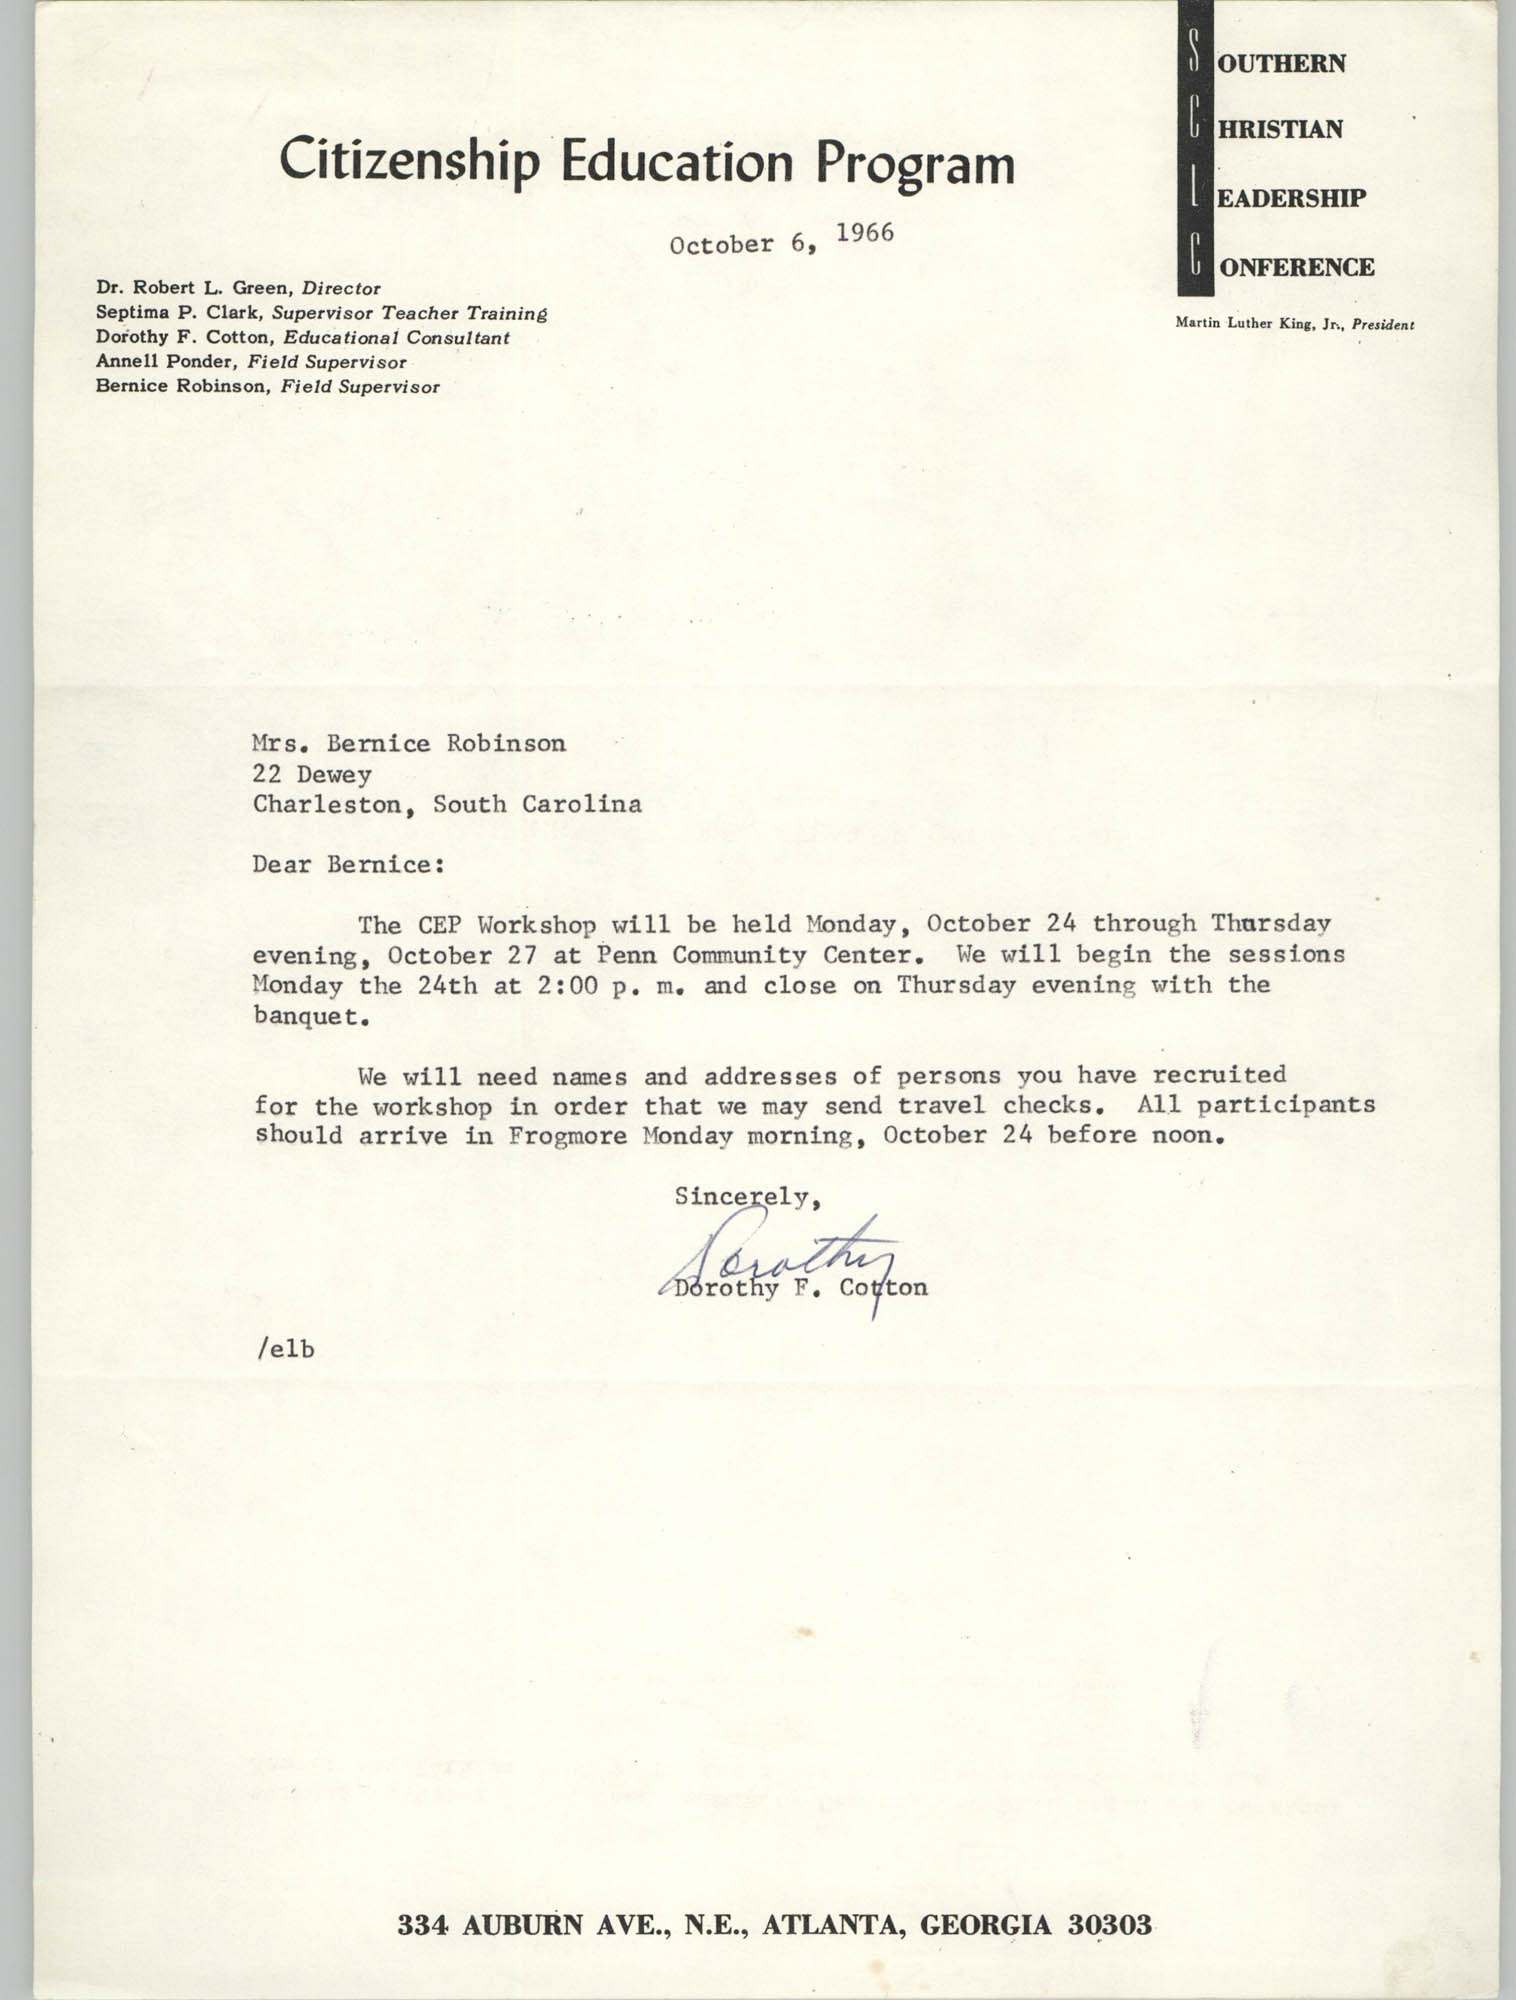 Letter from Dorothy F. Cotton to Bernice Robinson, October 6, 1966